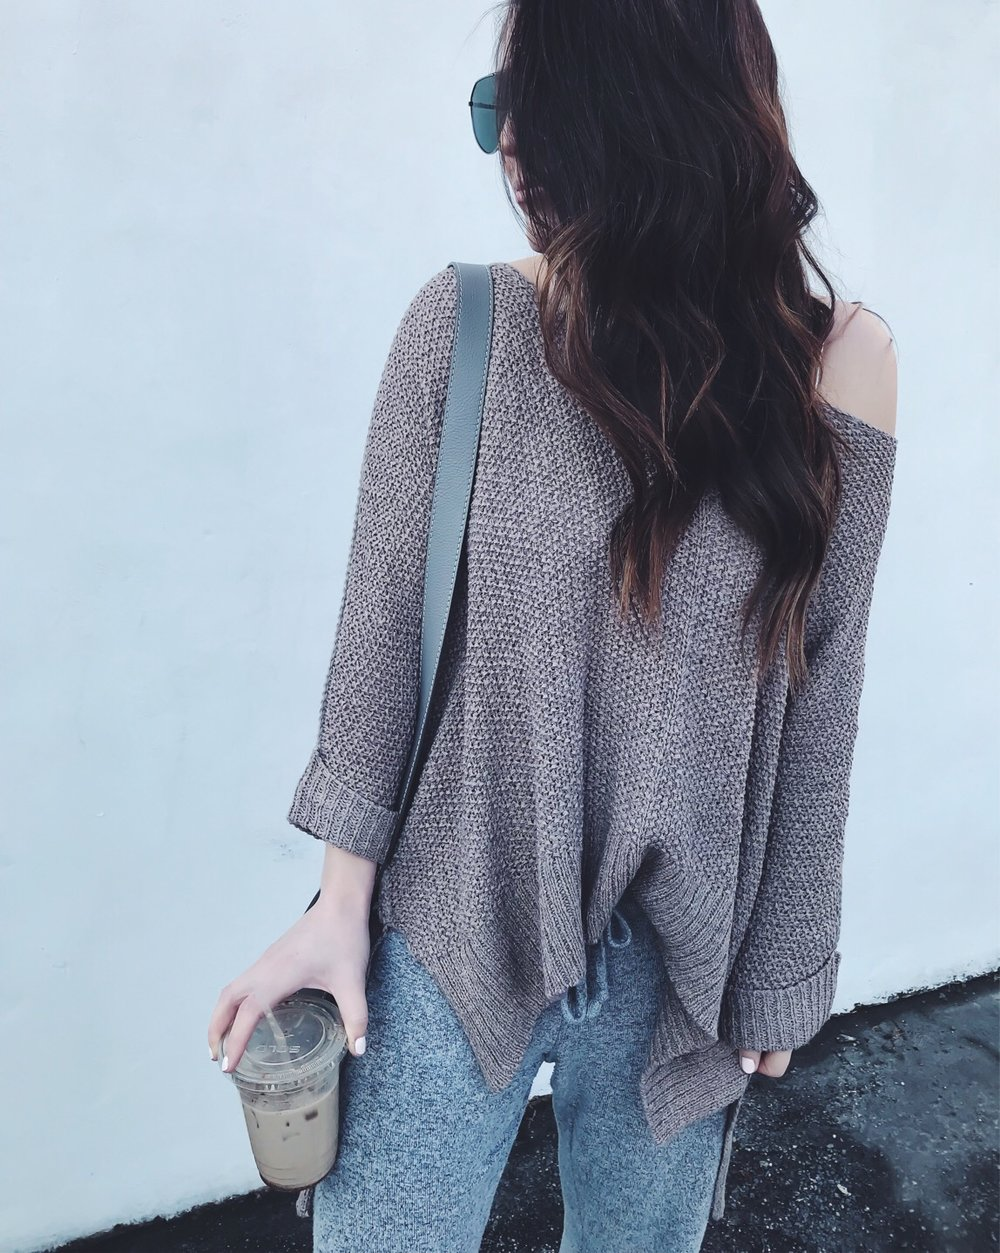 Instagram Round Up + Current Sales | Pine Barren Beauty | outfit of the day, outfit details, spring outfit, slouchy sweater, off the shoulder sweater